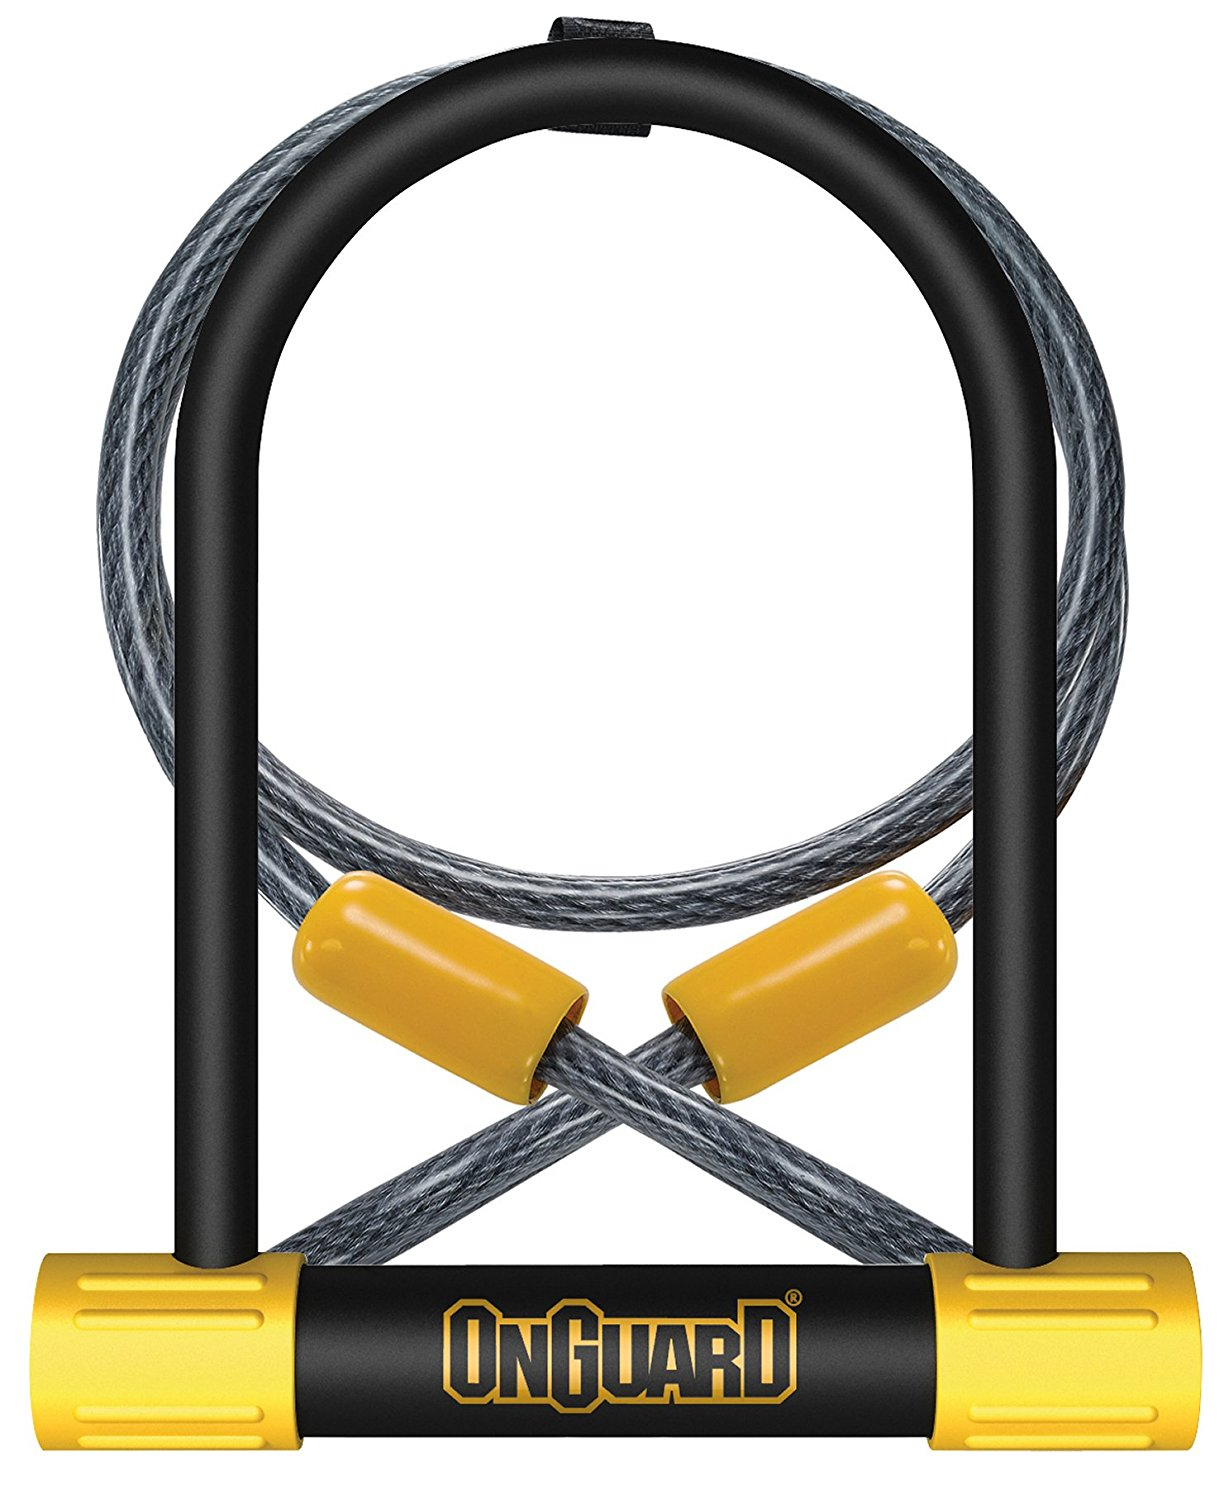 OnGuard Bulldog DT U-Lock with 4-Foot Cinch Loop Cable